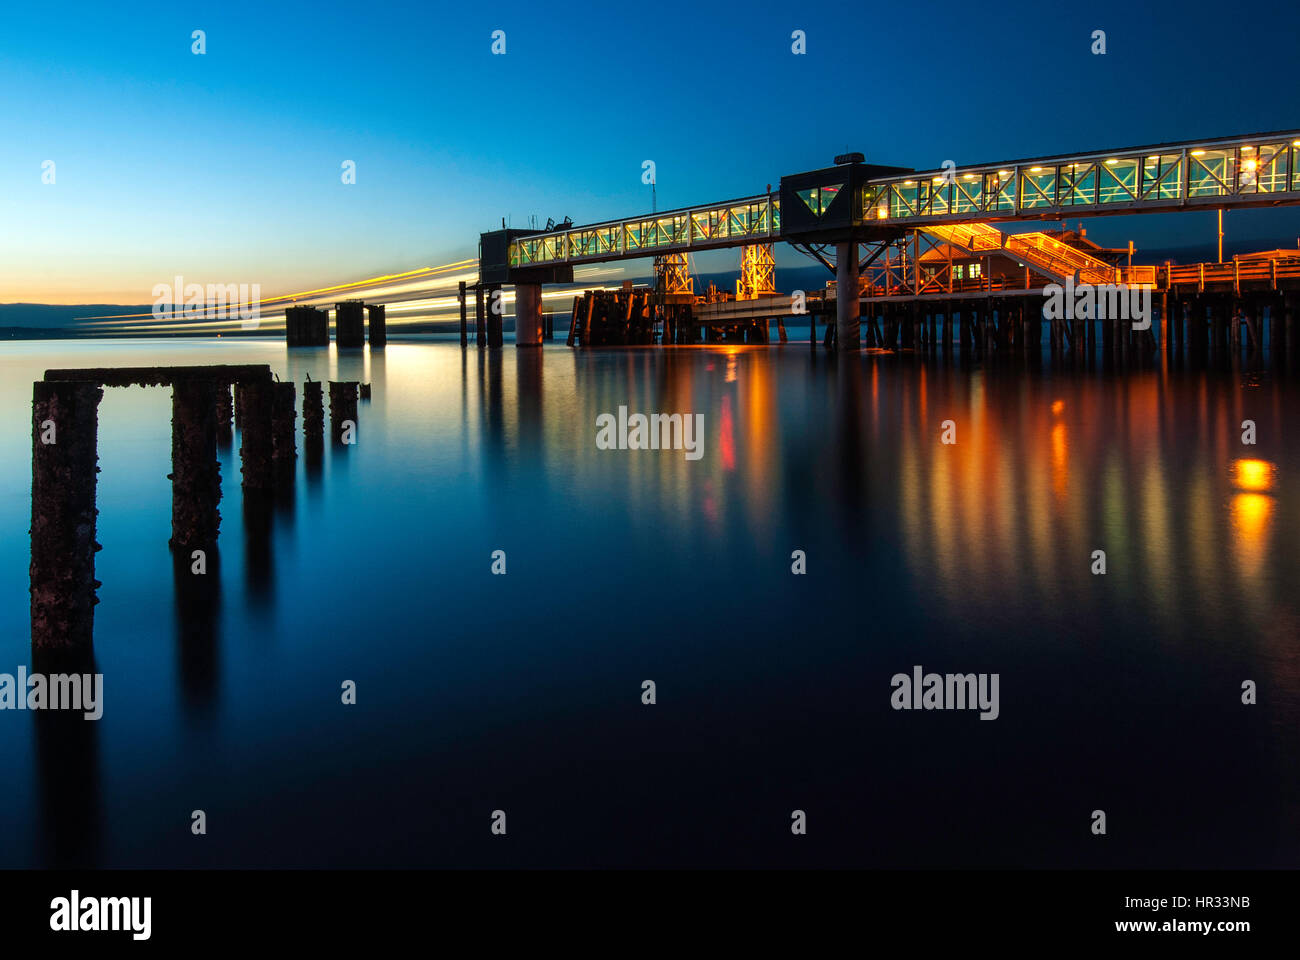 Ferry Ride Terminal in Kingston, Washington. - Stock Image